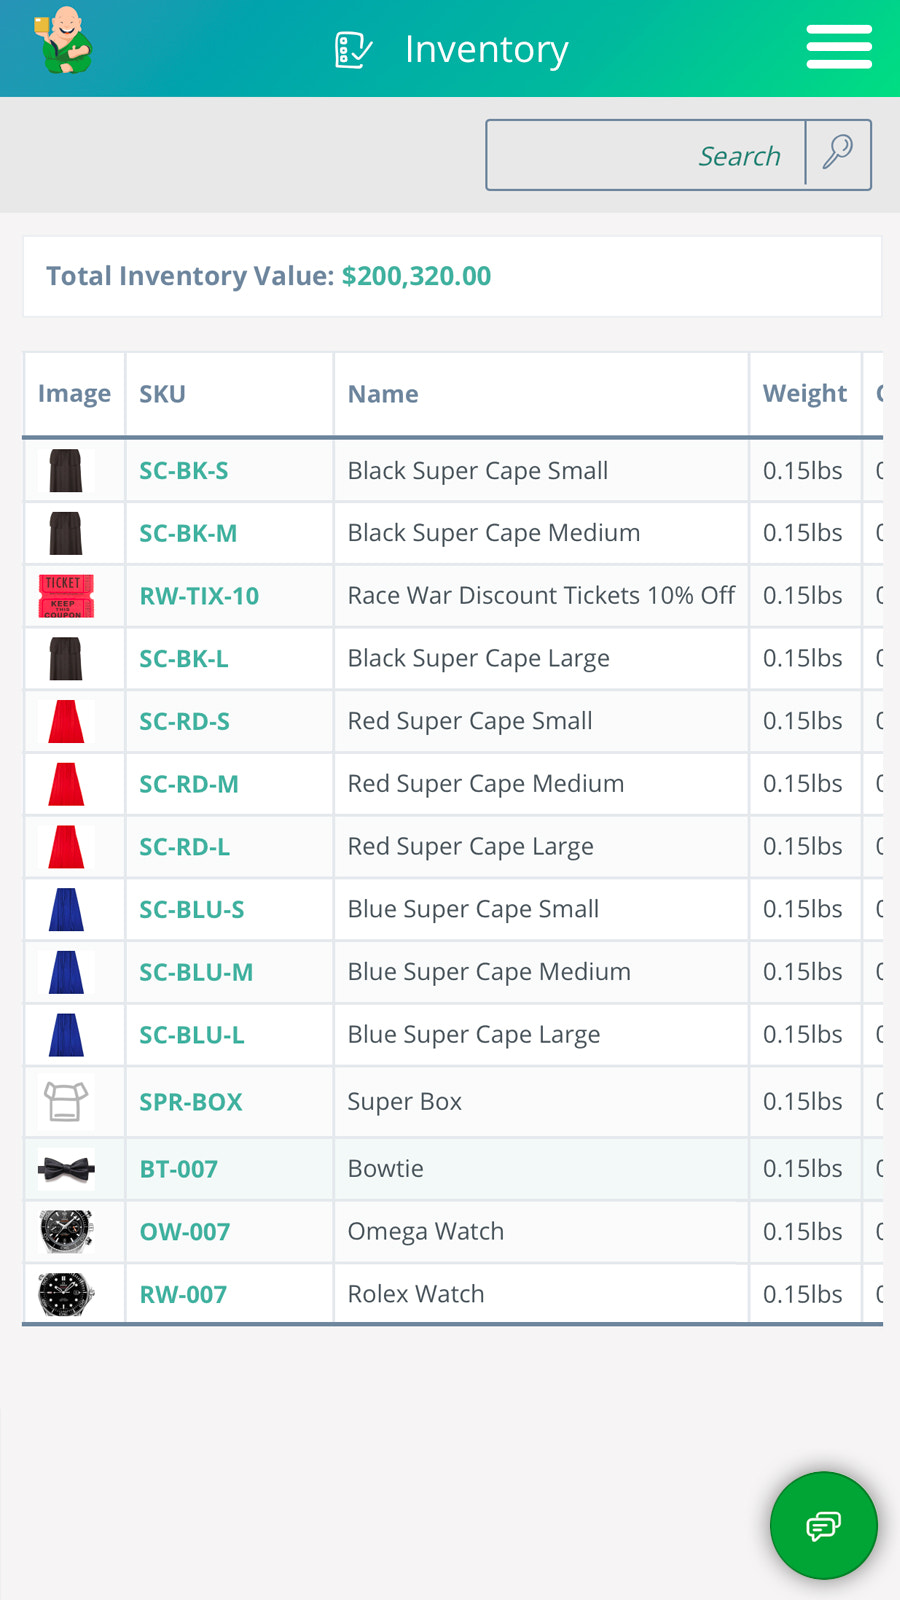 Inventory Management View on Mobile